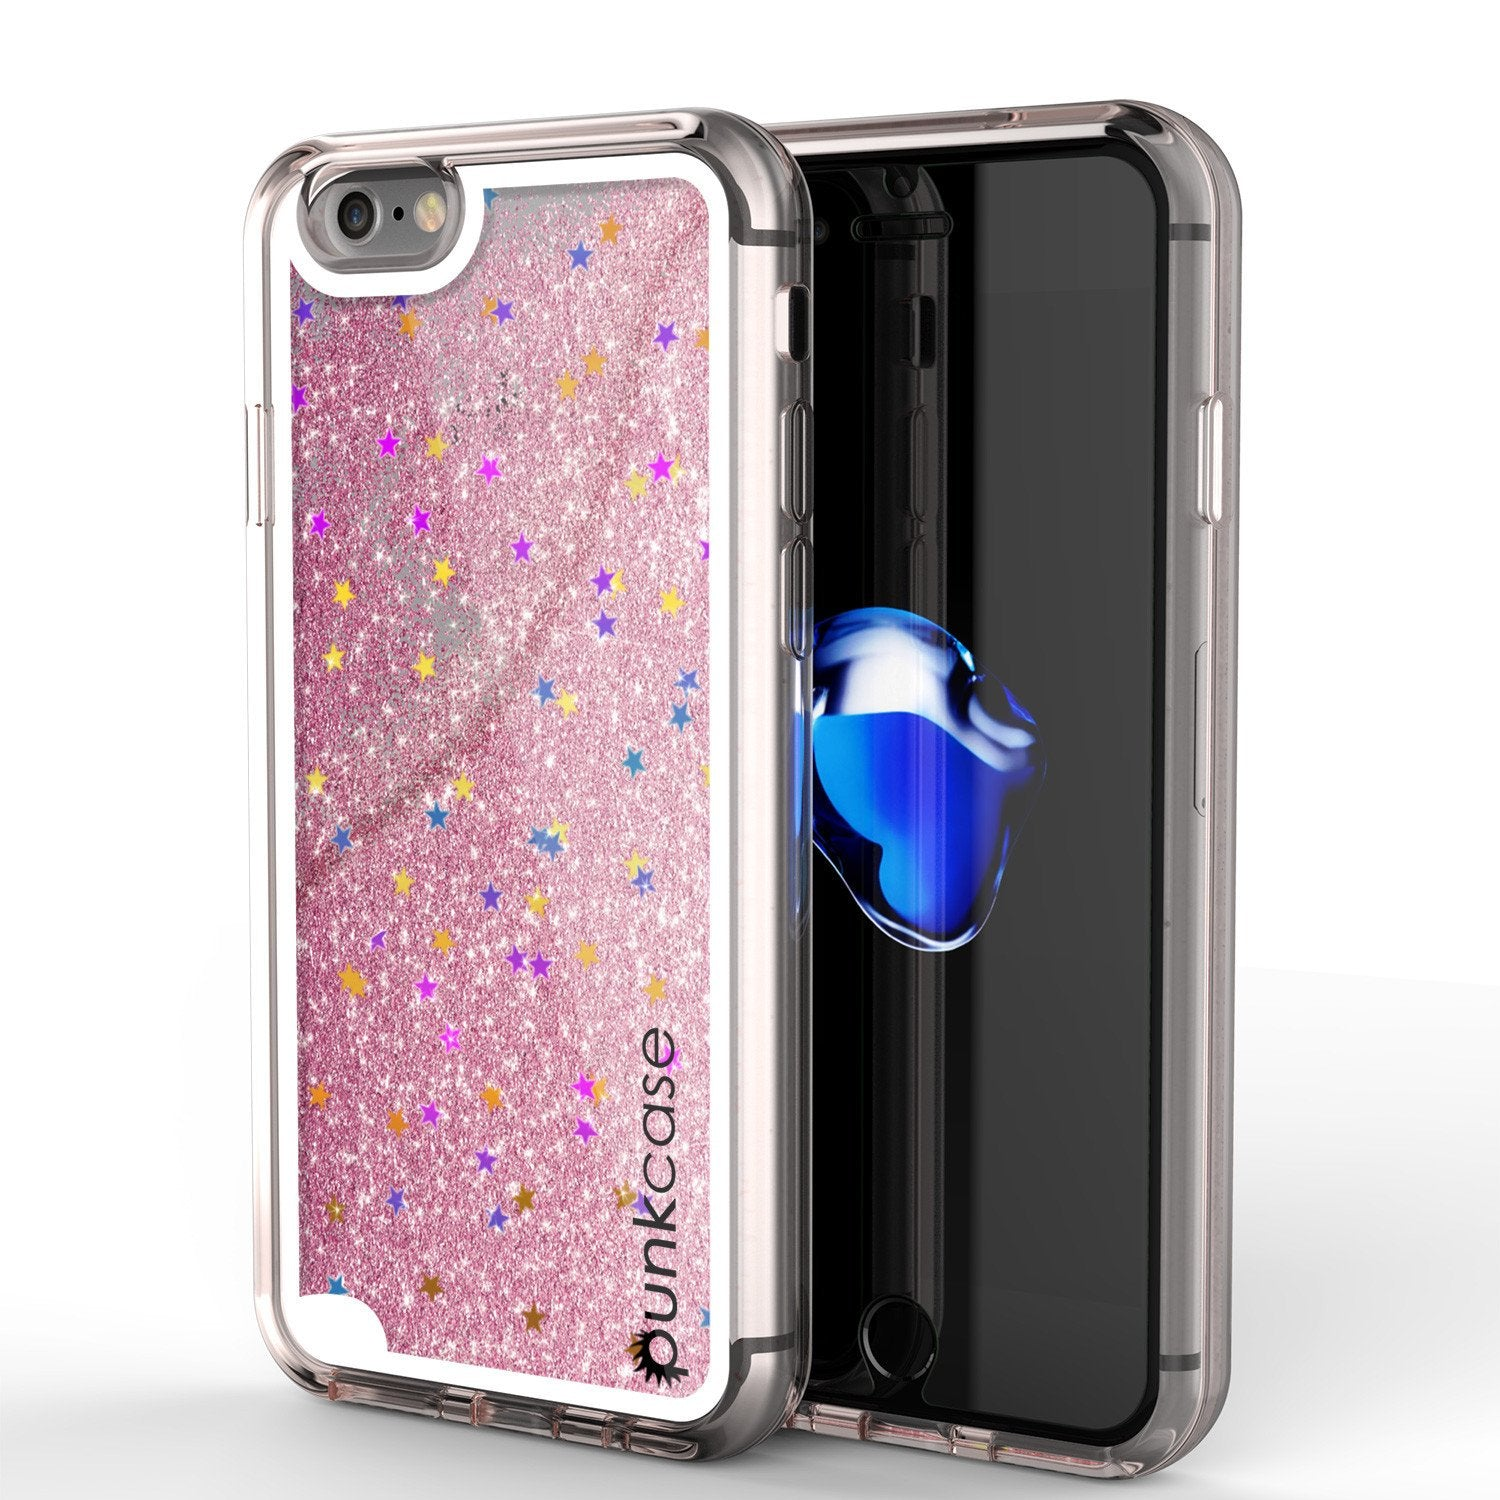 iPhone 7 Case, Punkcase [Liquid Rose Series] Protective Dual Layer Floating Glitter Cover with lots of Bling & Sparkle + 0.3mm Tempered Glass Screen Protector for Apple iPhone 7s